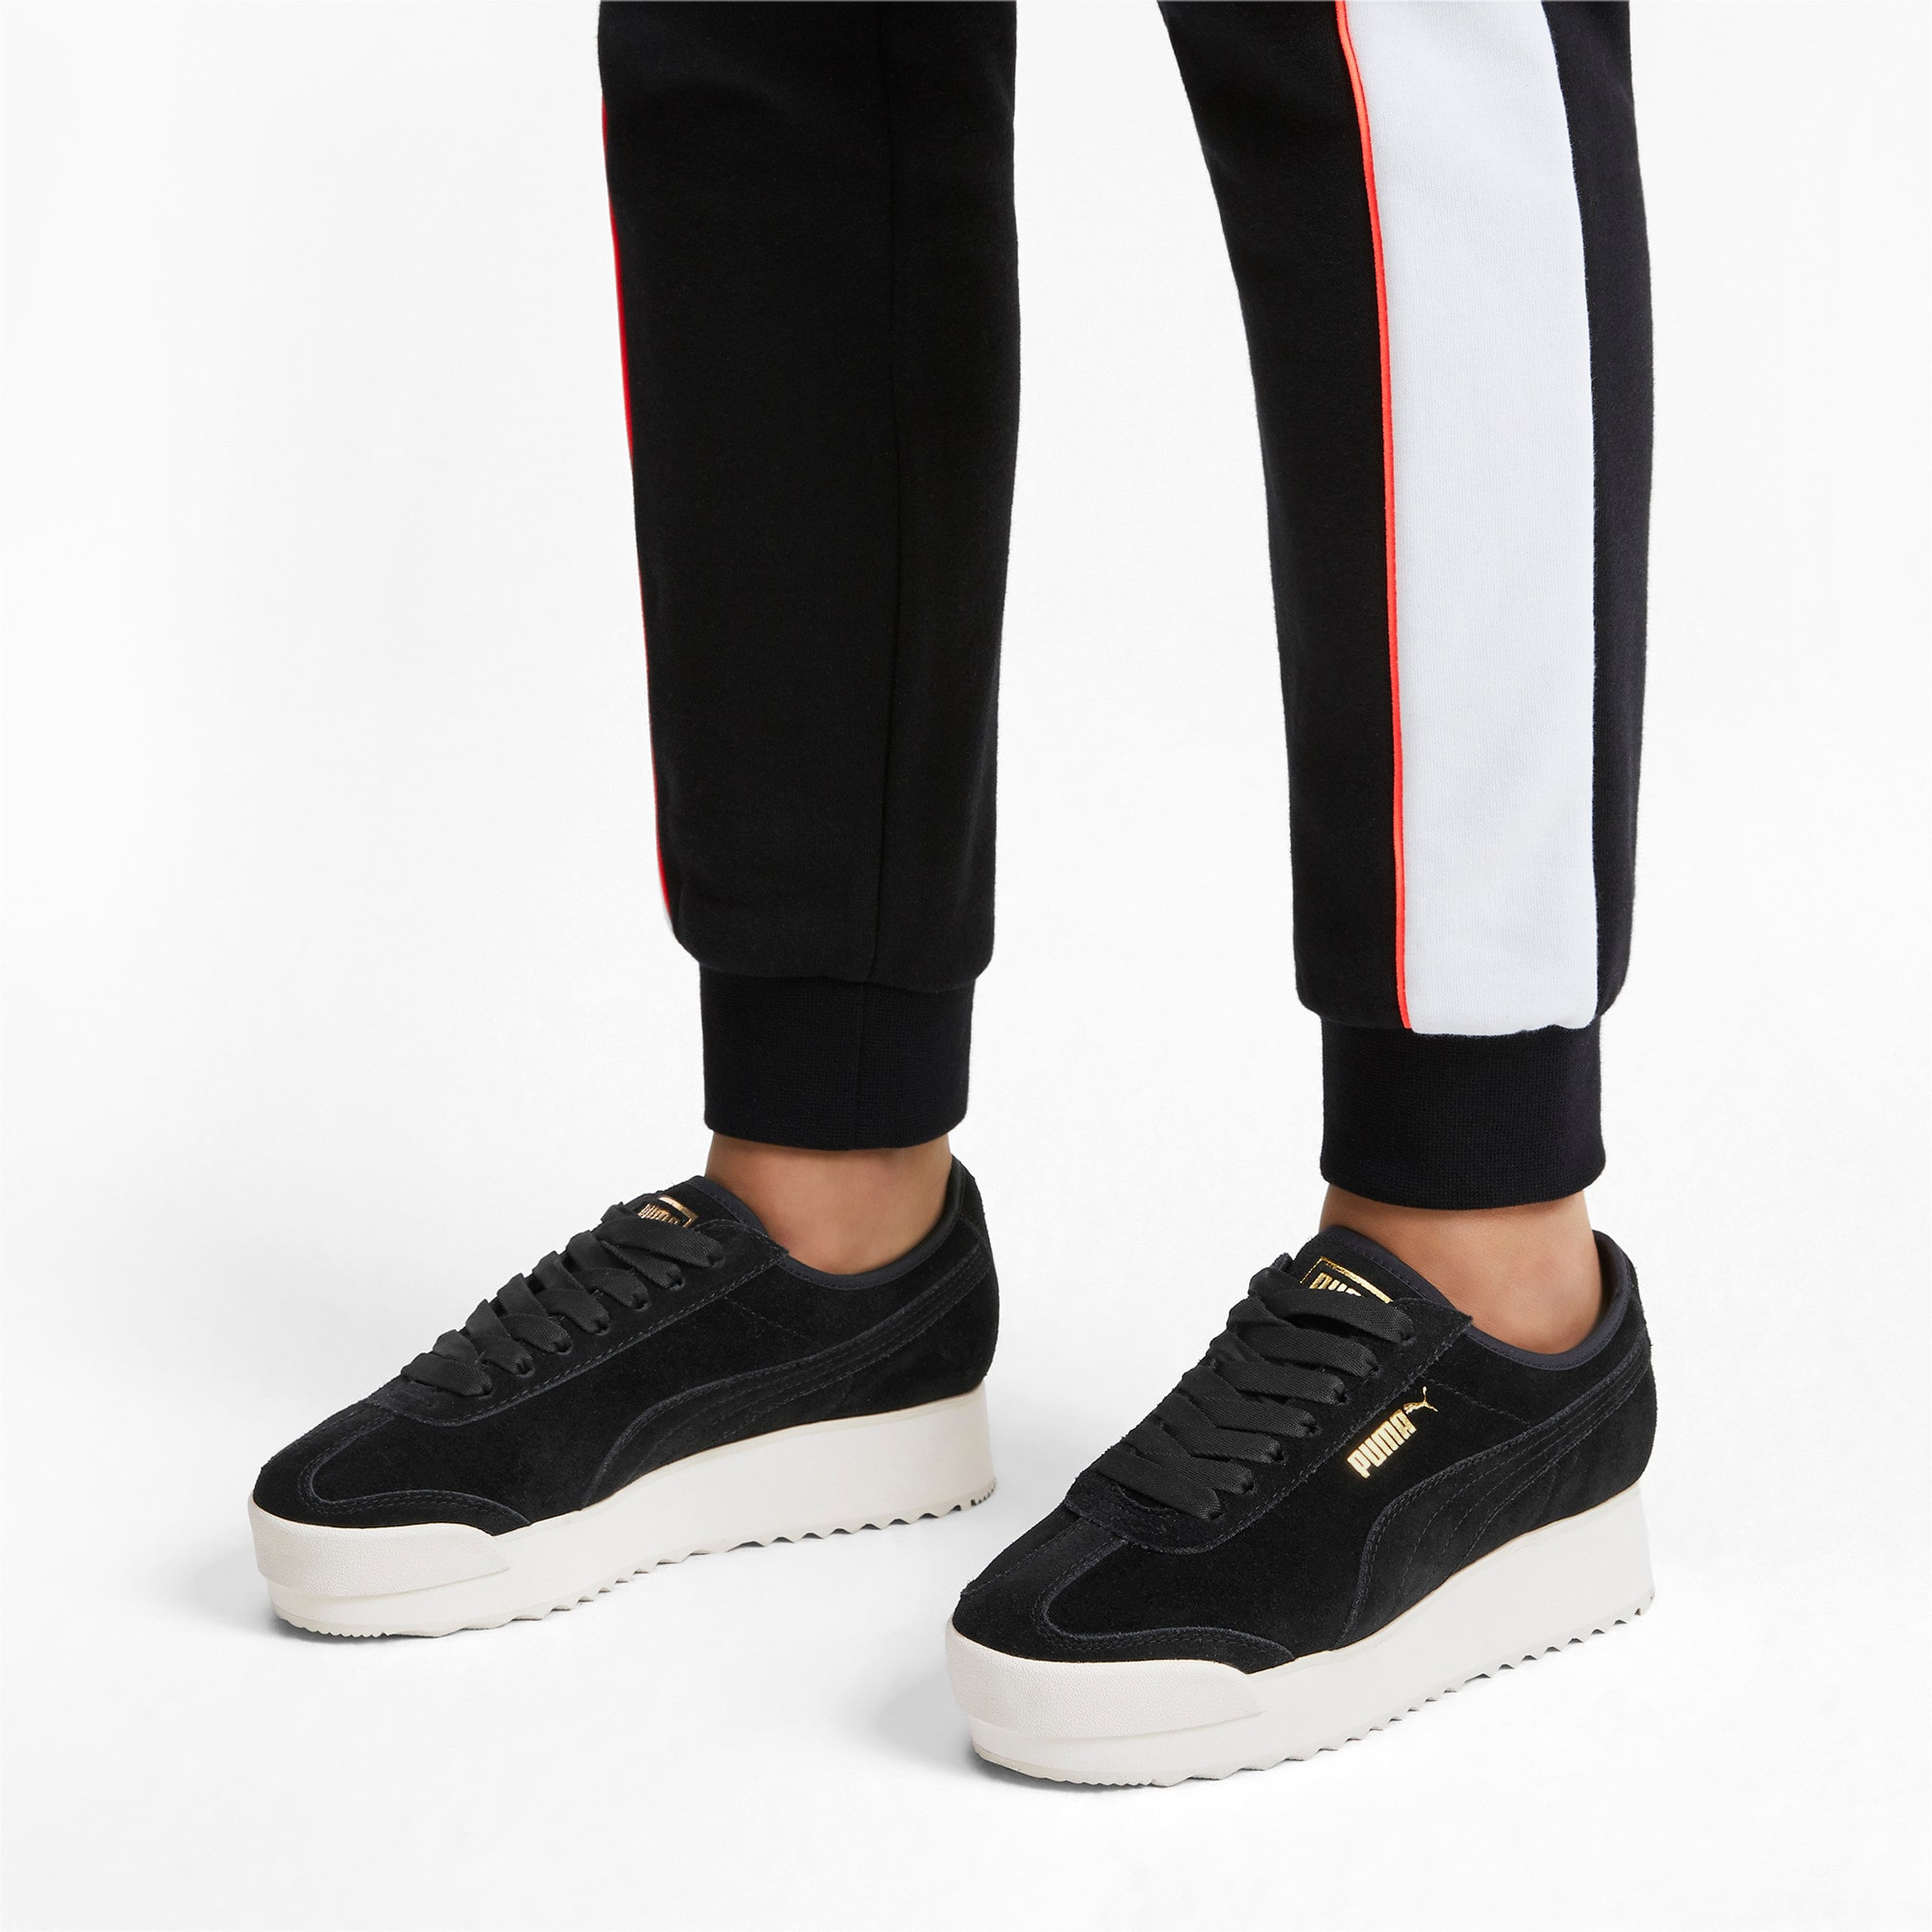 Thumbnail 2 of Roma Amor Suede Women's Sneakers, Puma Black-Puma Team Gold, medium